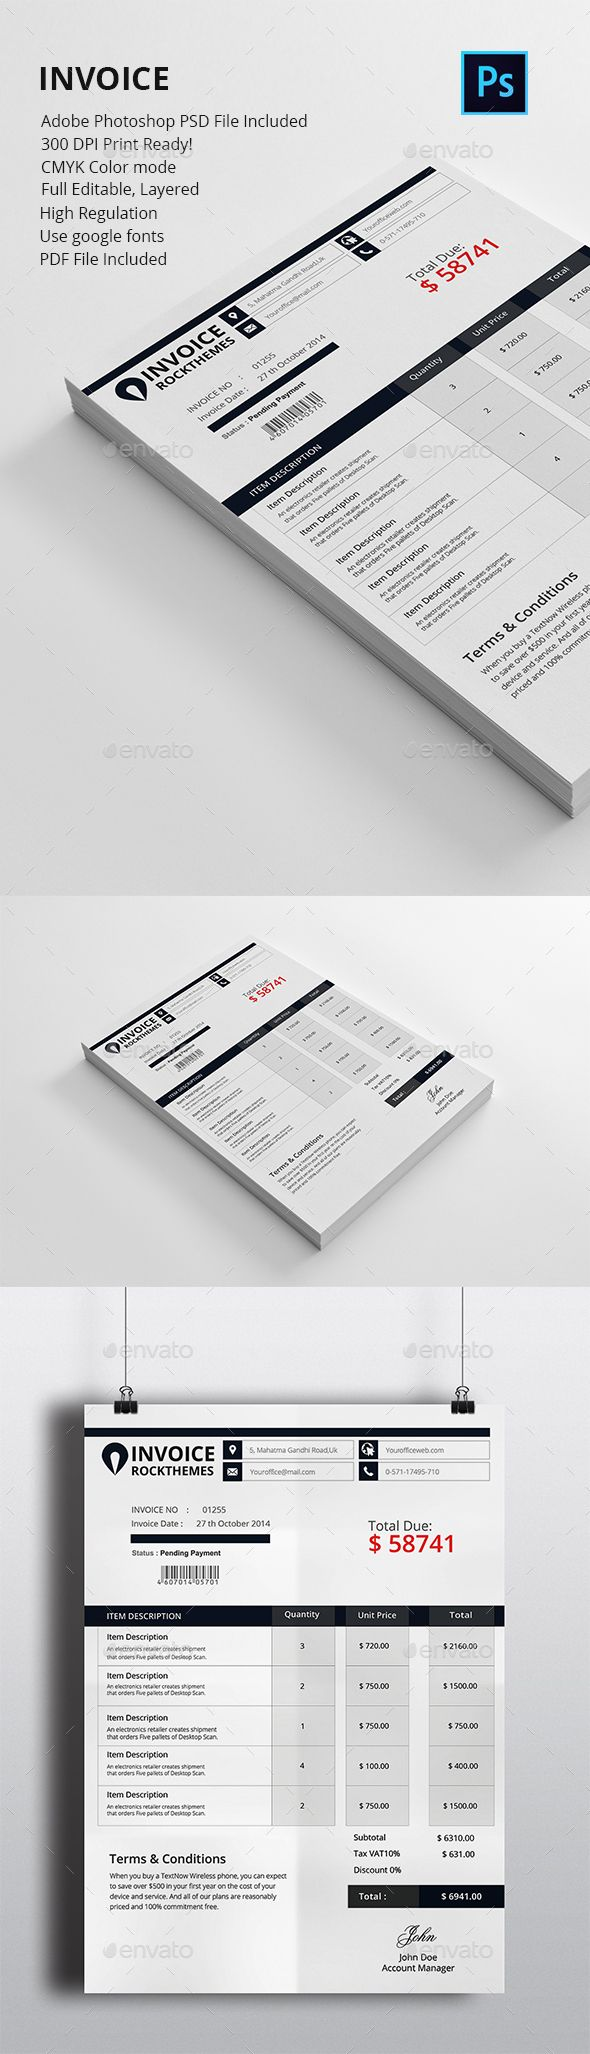 Invoice Template PSD. Download here: https://graphicriver.net/item/invoice/17402931?ref=ksioks